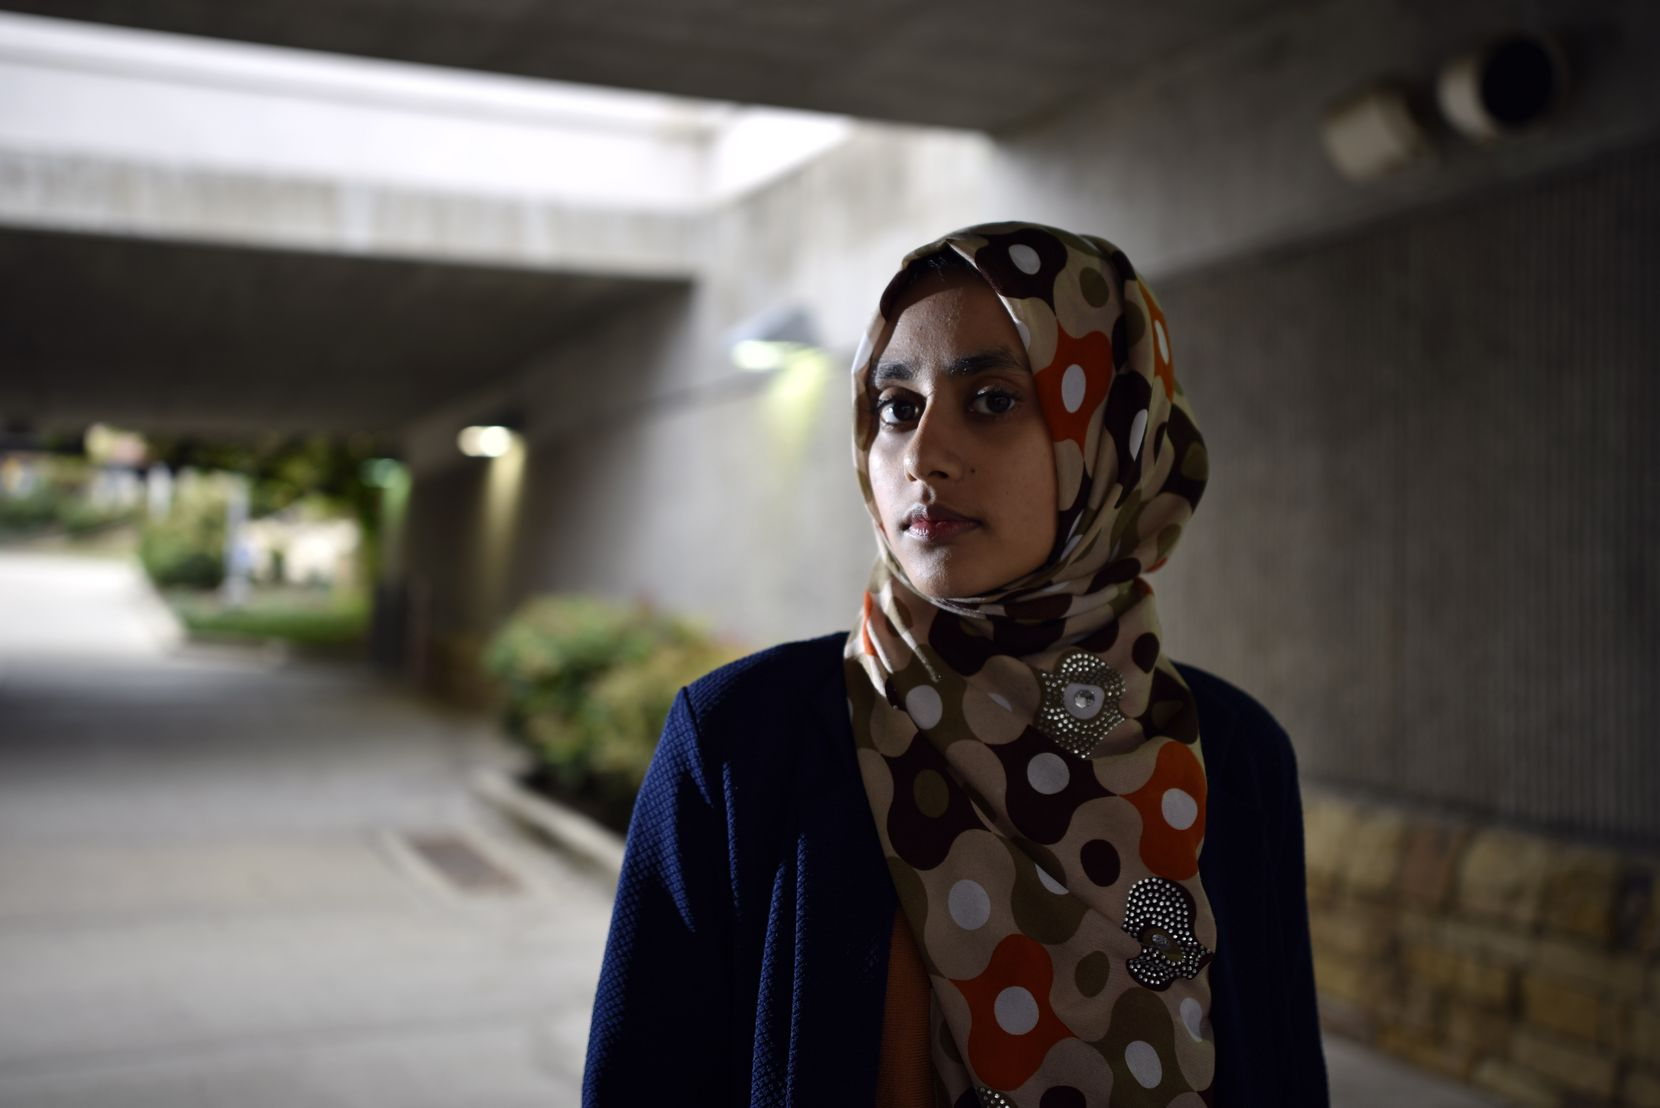 Aysha Khan, 21, a Muslim woman, rides the DART from Arapaho Center Station in Richardson to the University of Texas at Dallas. Her parents asked her to start driving to school after Donald Trump was elected president. (Ben Torres/Special Contributor)